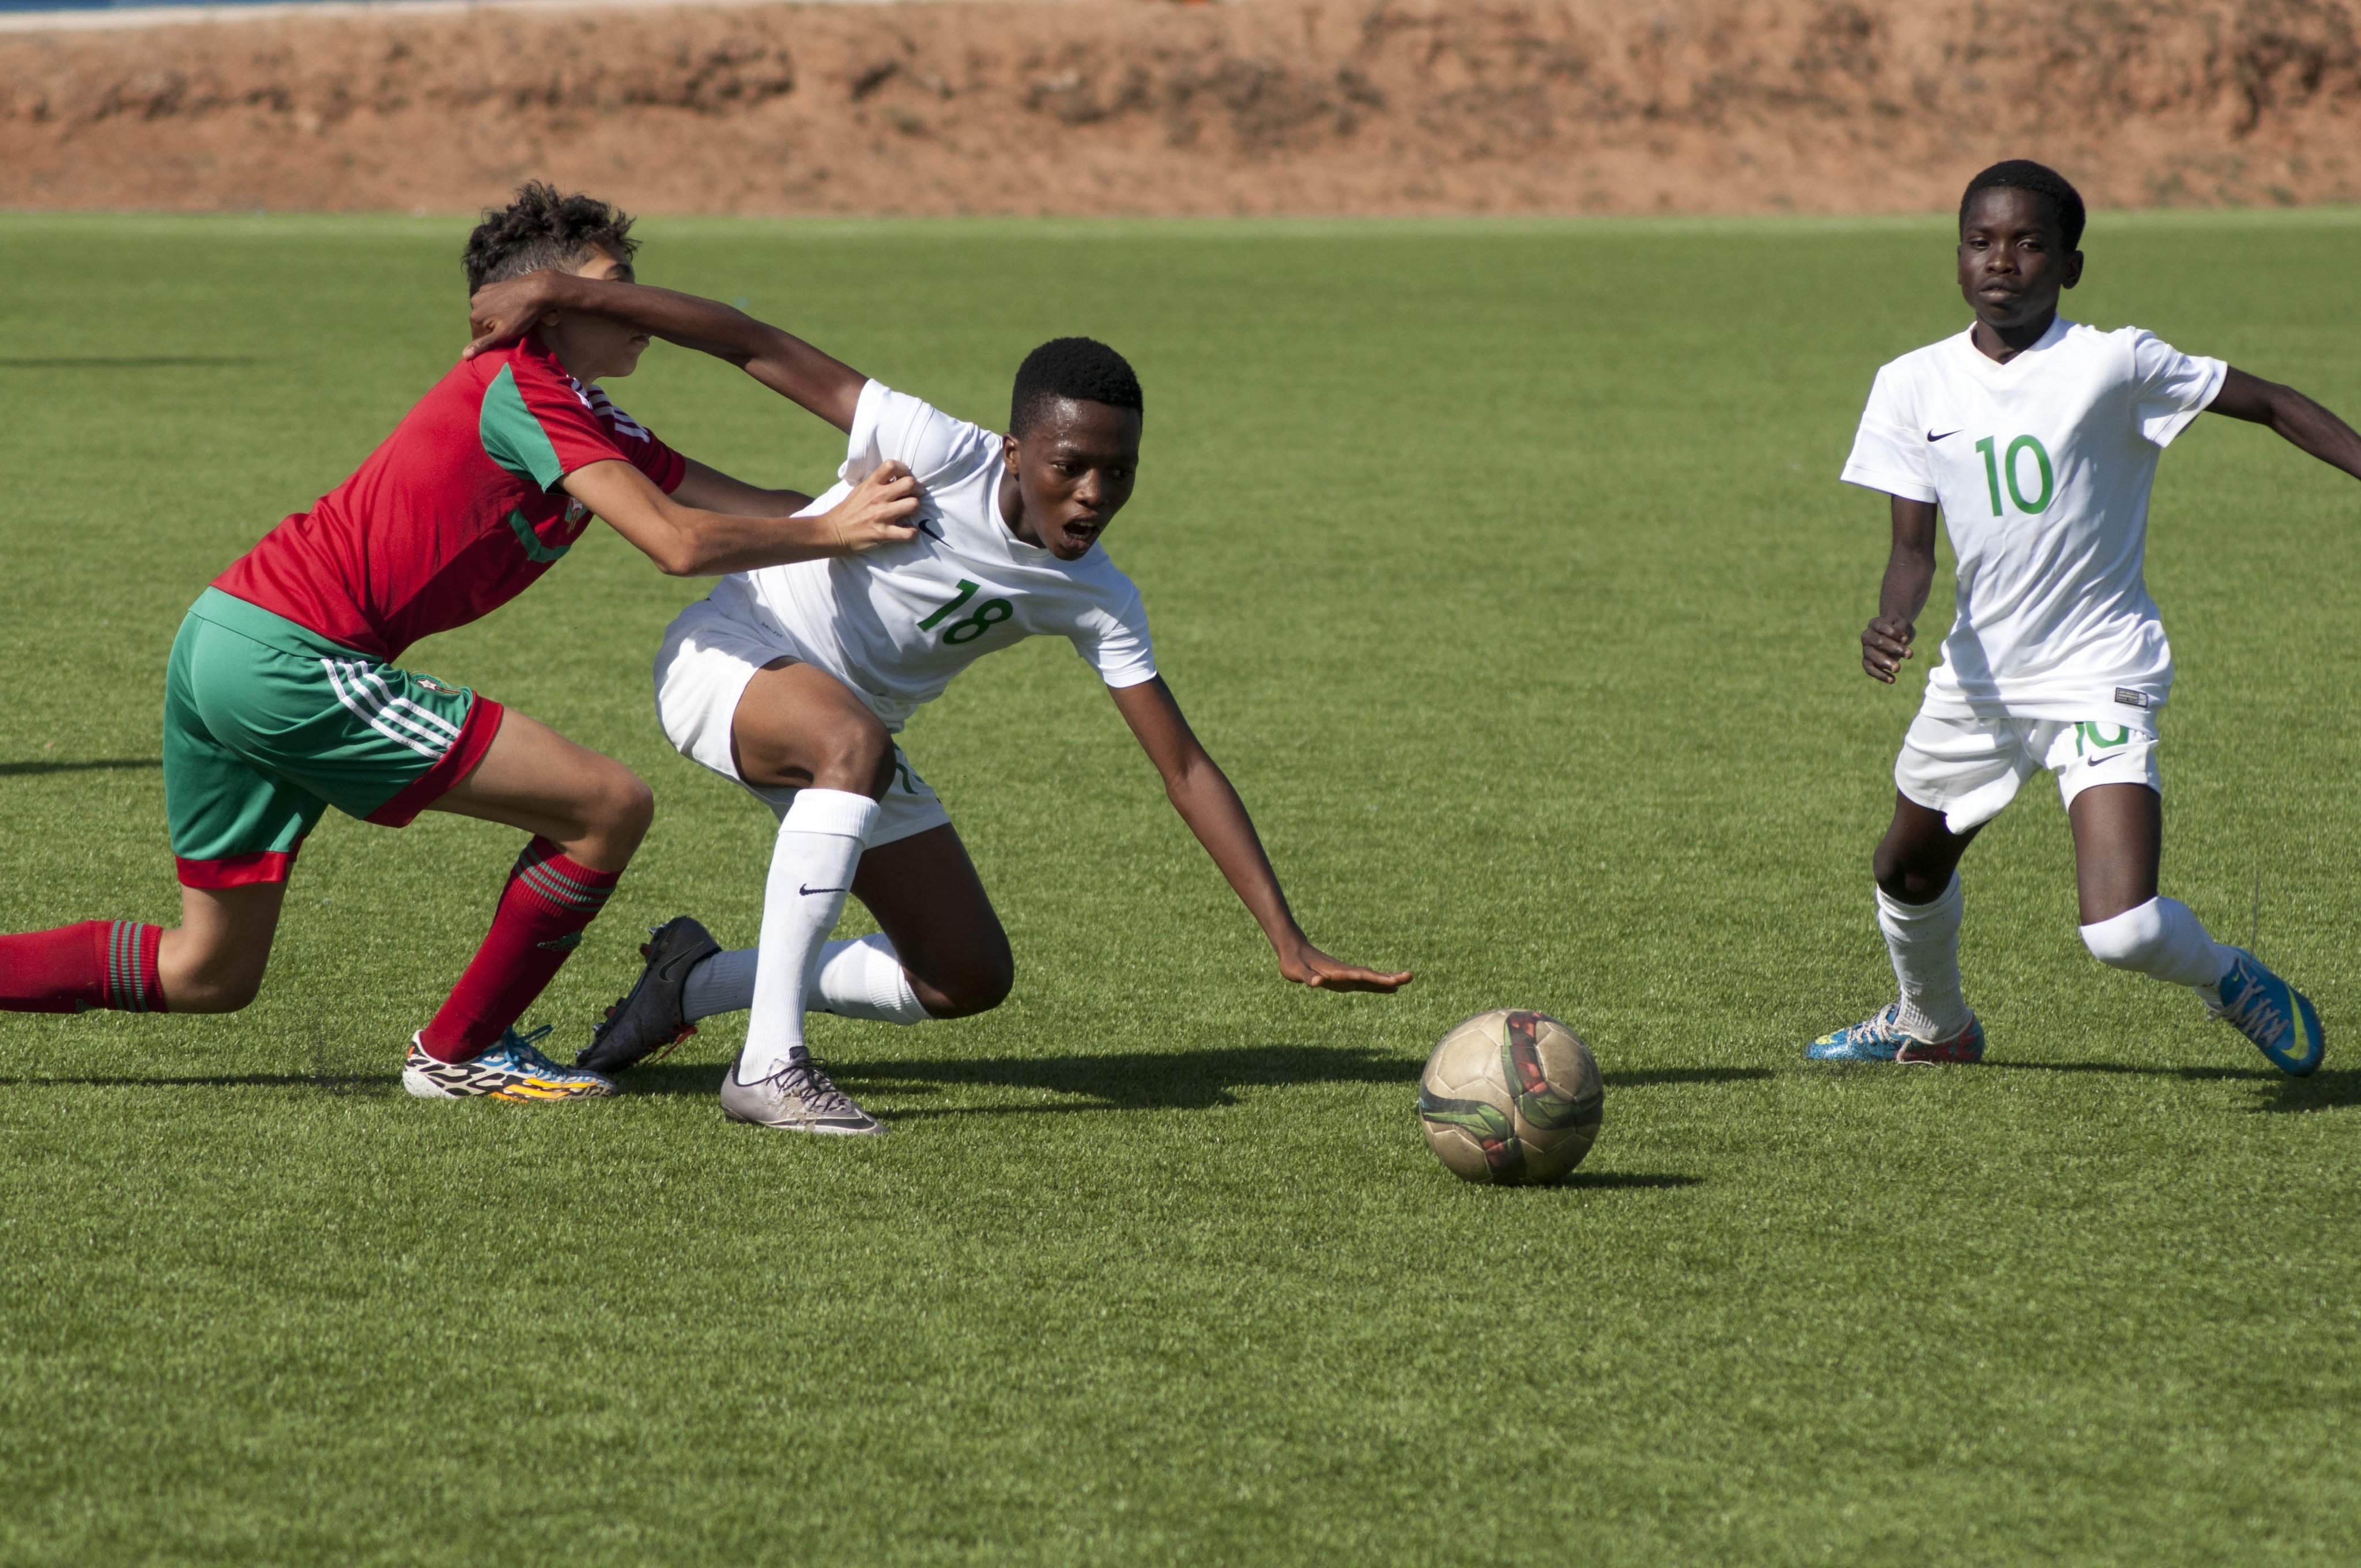 Future Eagles Thrash Mexico in 2019 International Dream Cup Opener